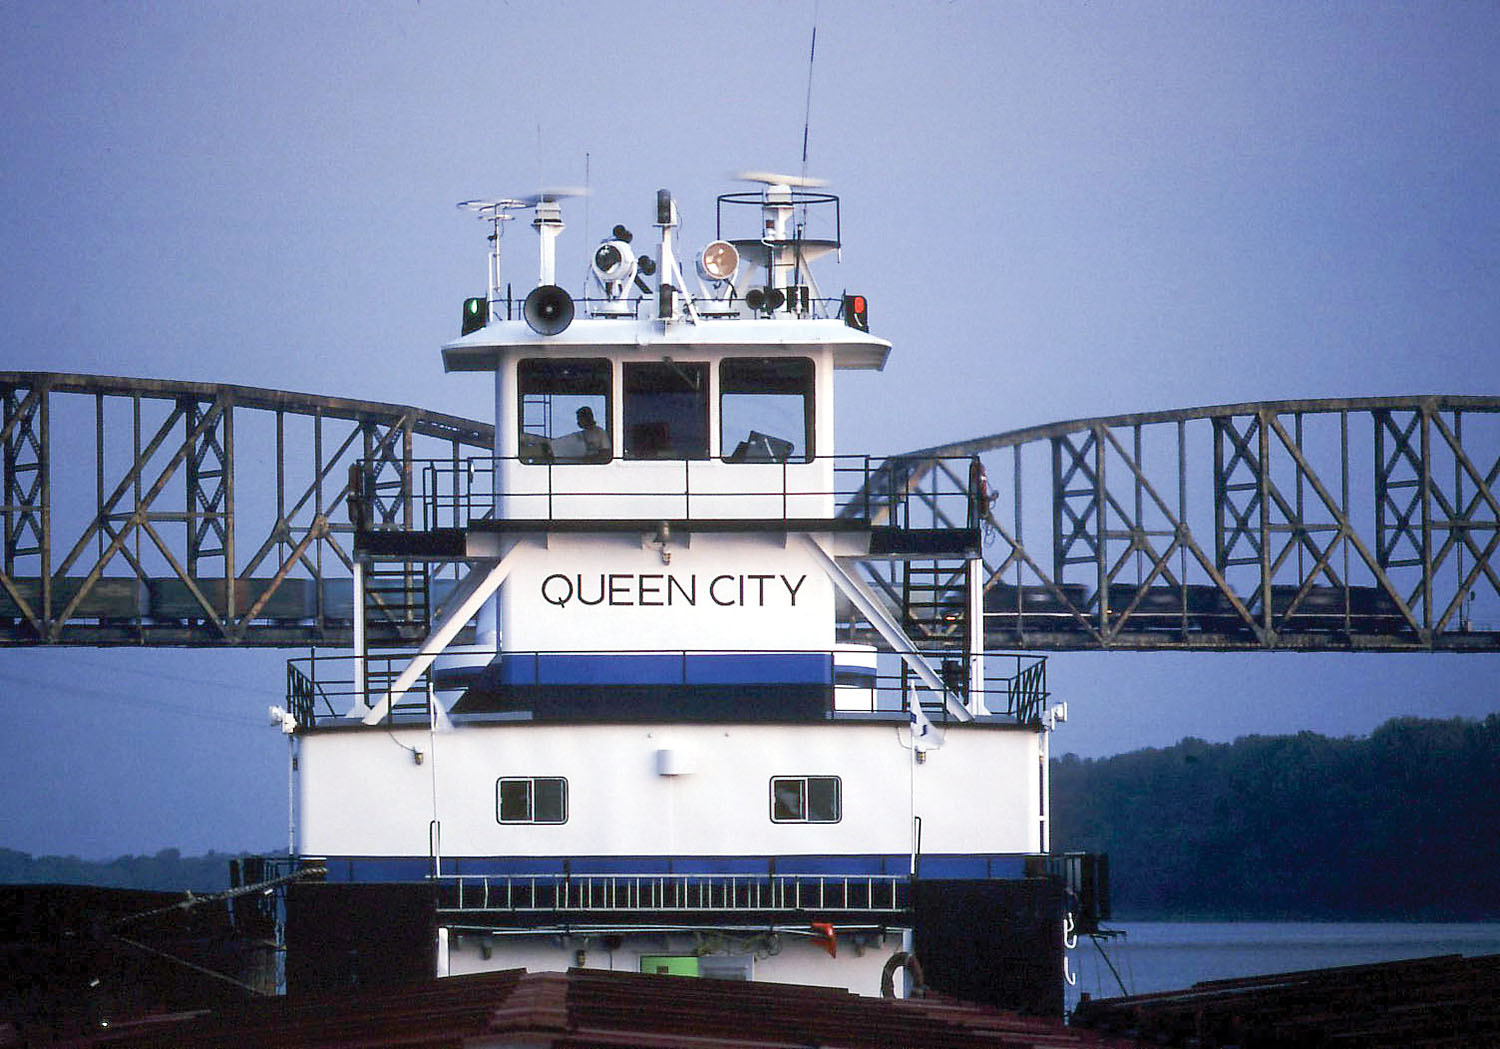 The first boat that IMS operated was the mv. Queen City, which IMS began operating on the Upper Mississippi River on May 31, 1988.